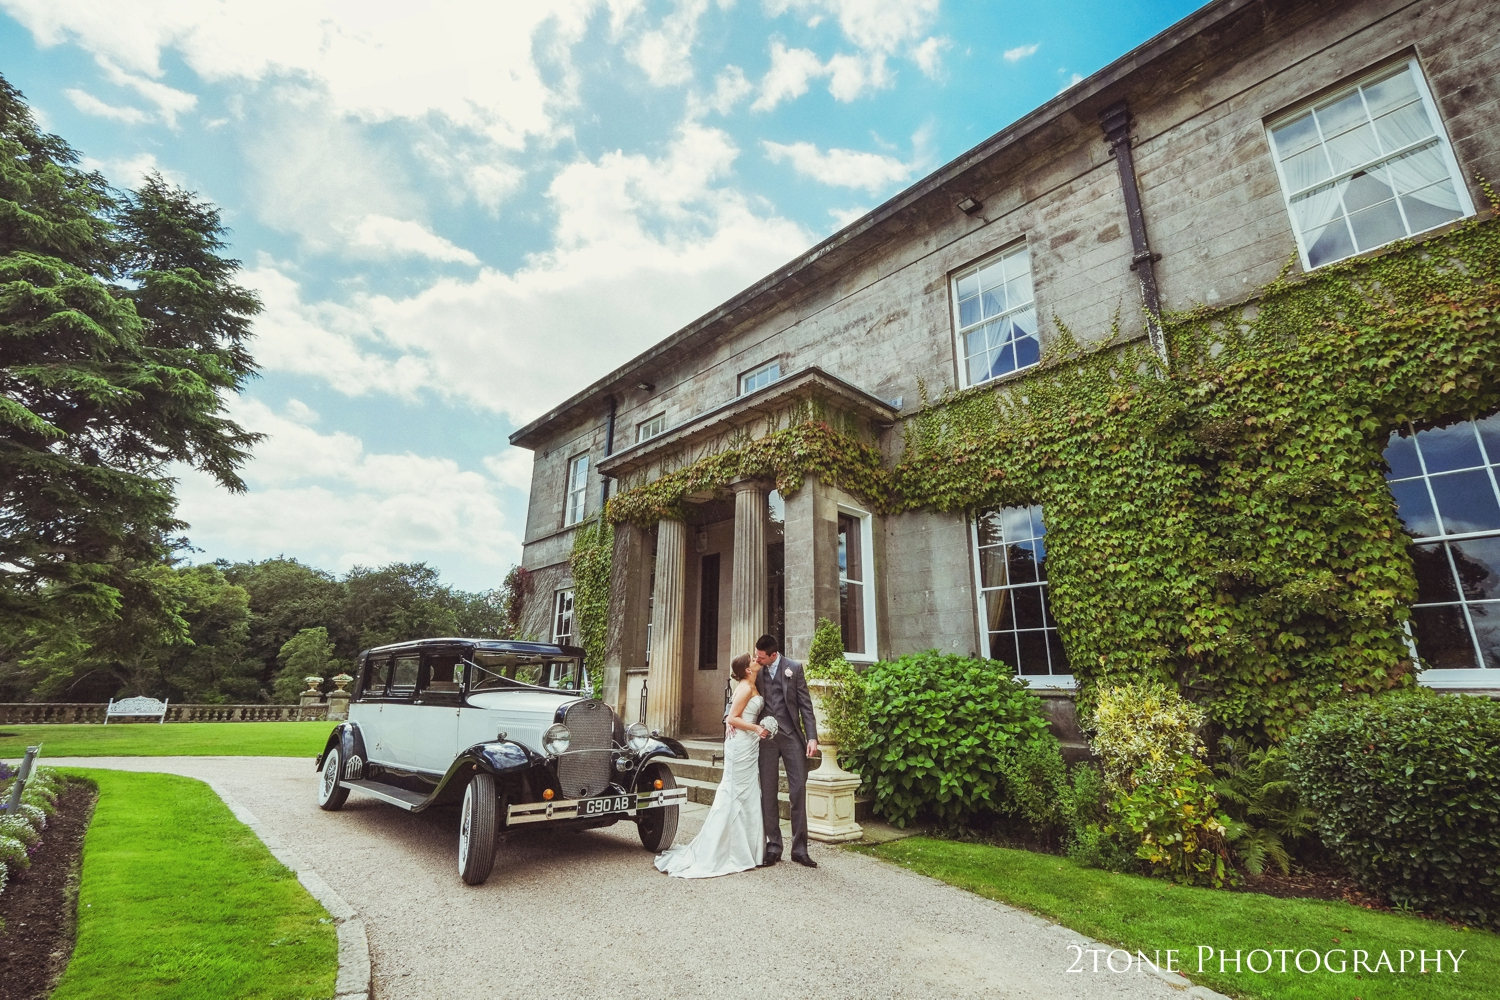 Before the vintage wedding car head's off and the wedding guests arrive, we make a little time for a few pictures.